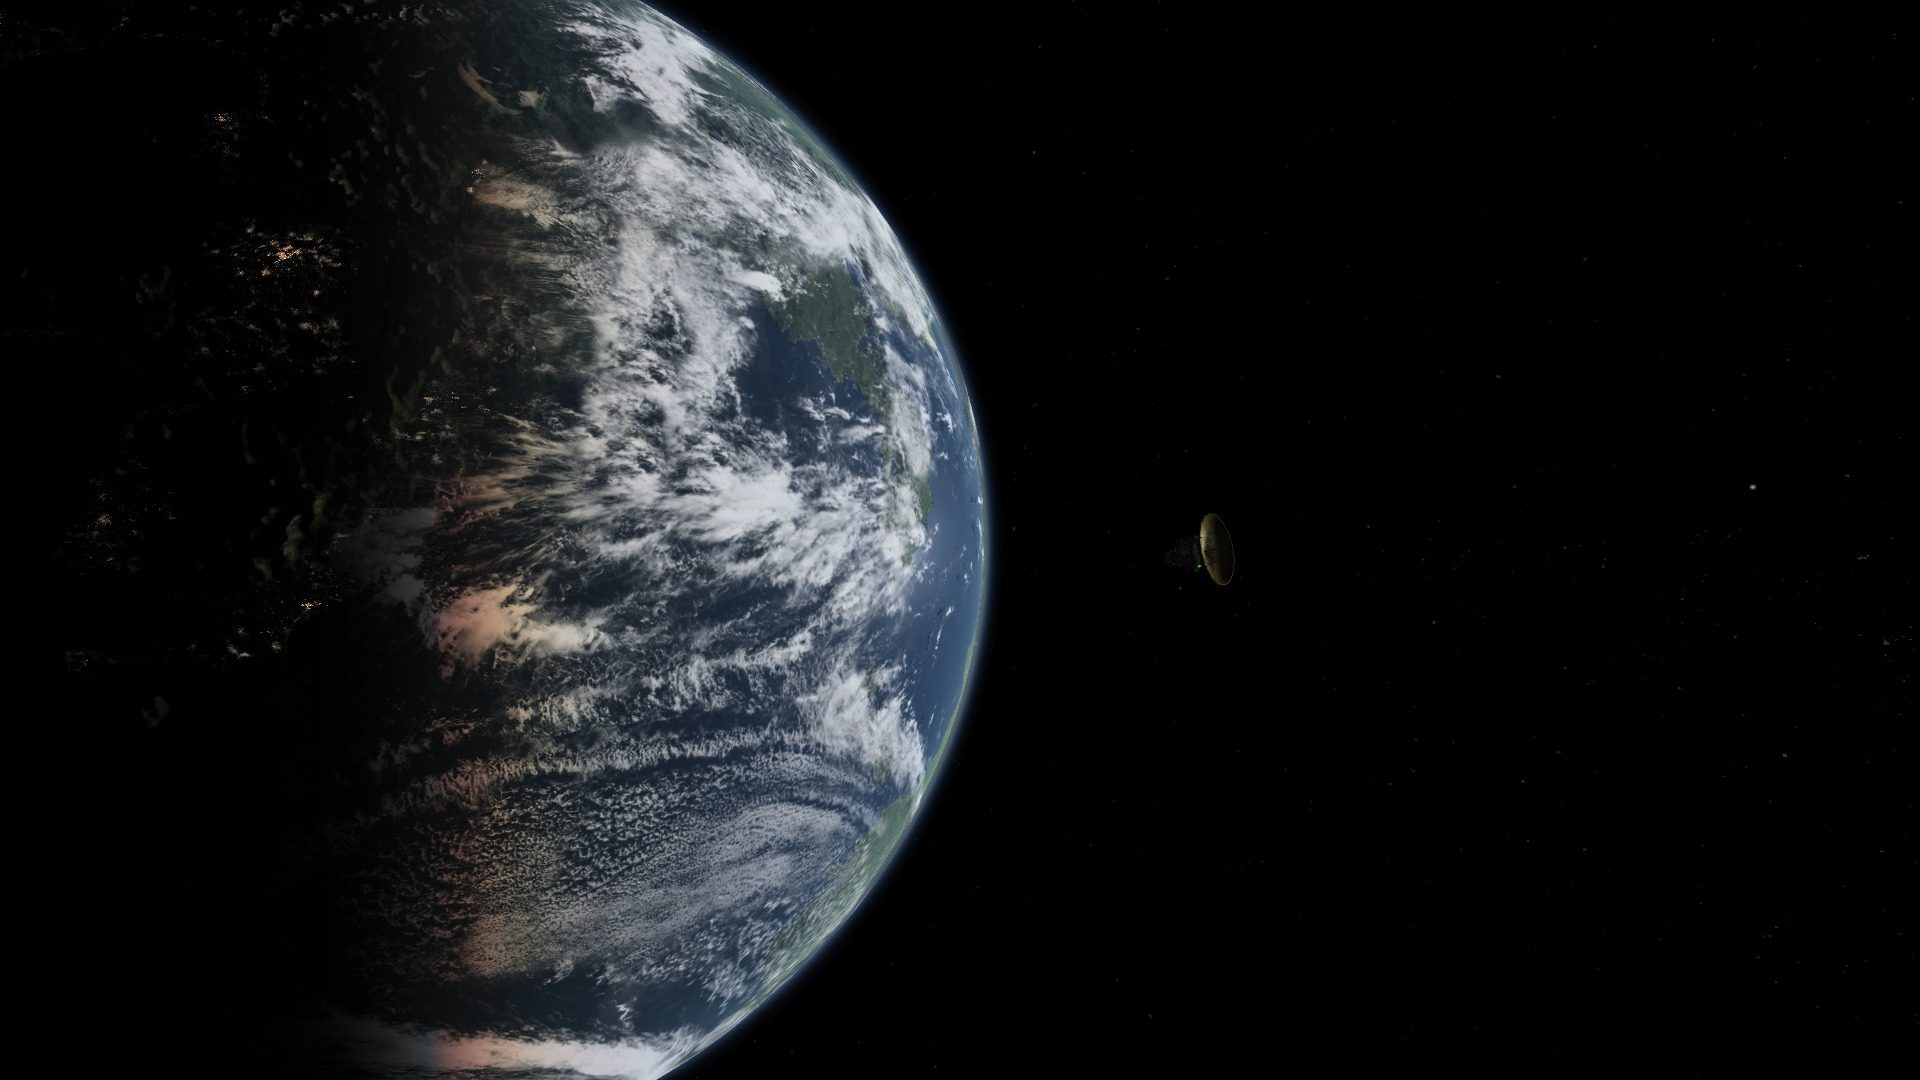 KSP Visual Mods - EVE and SVE